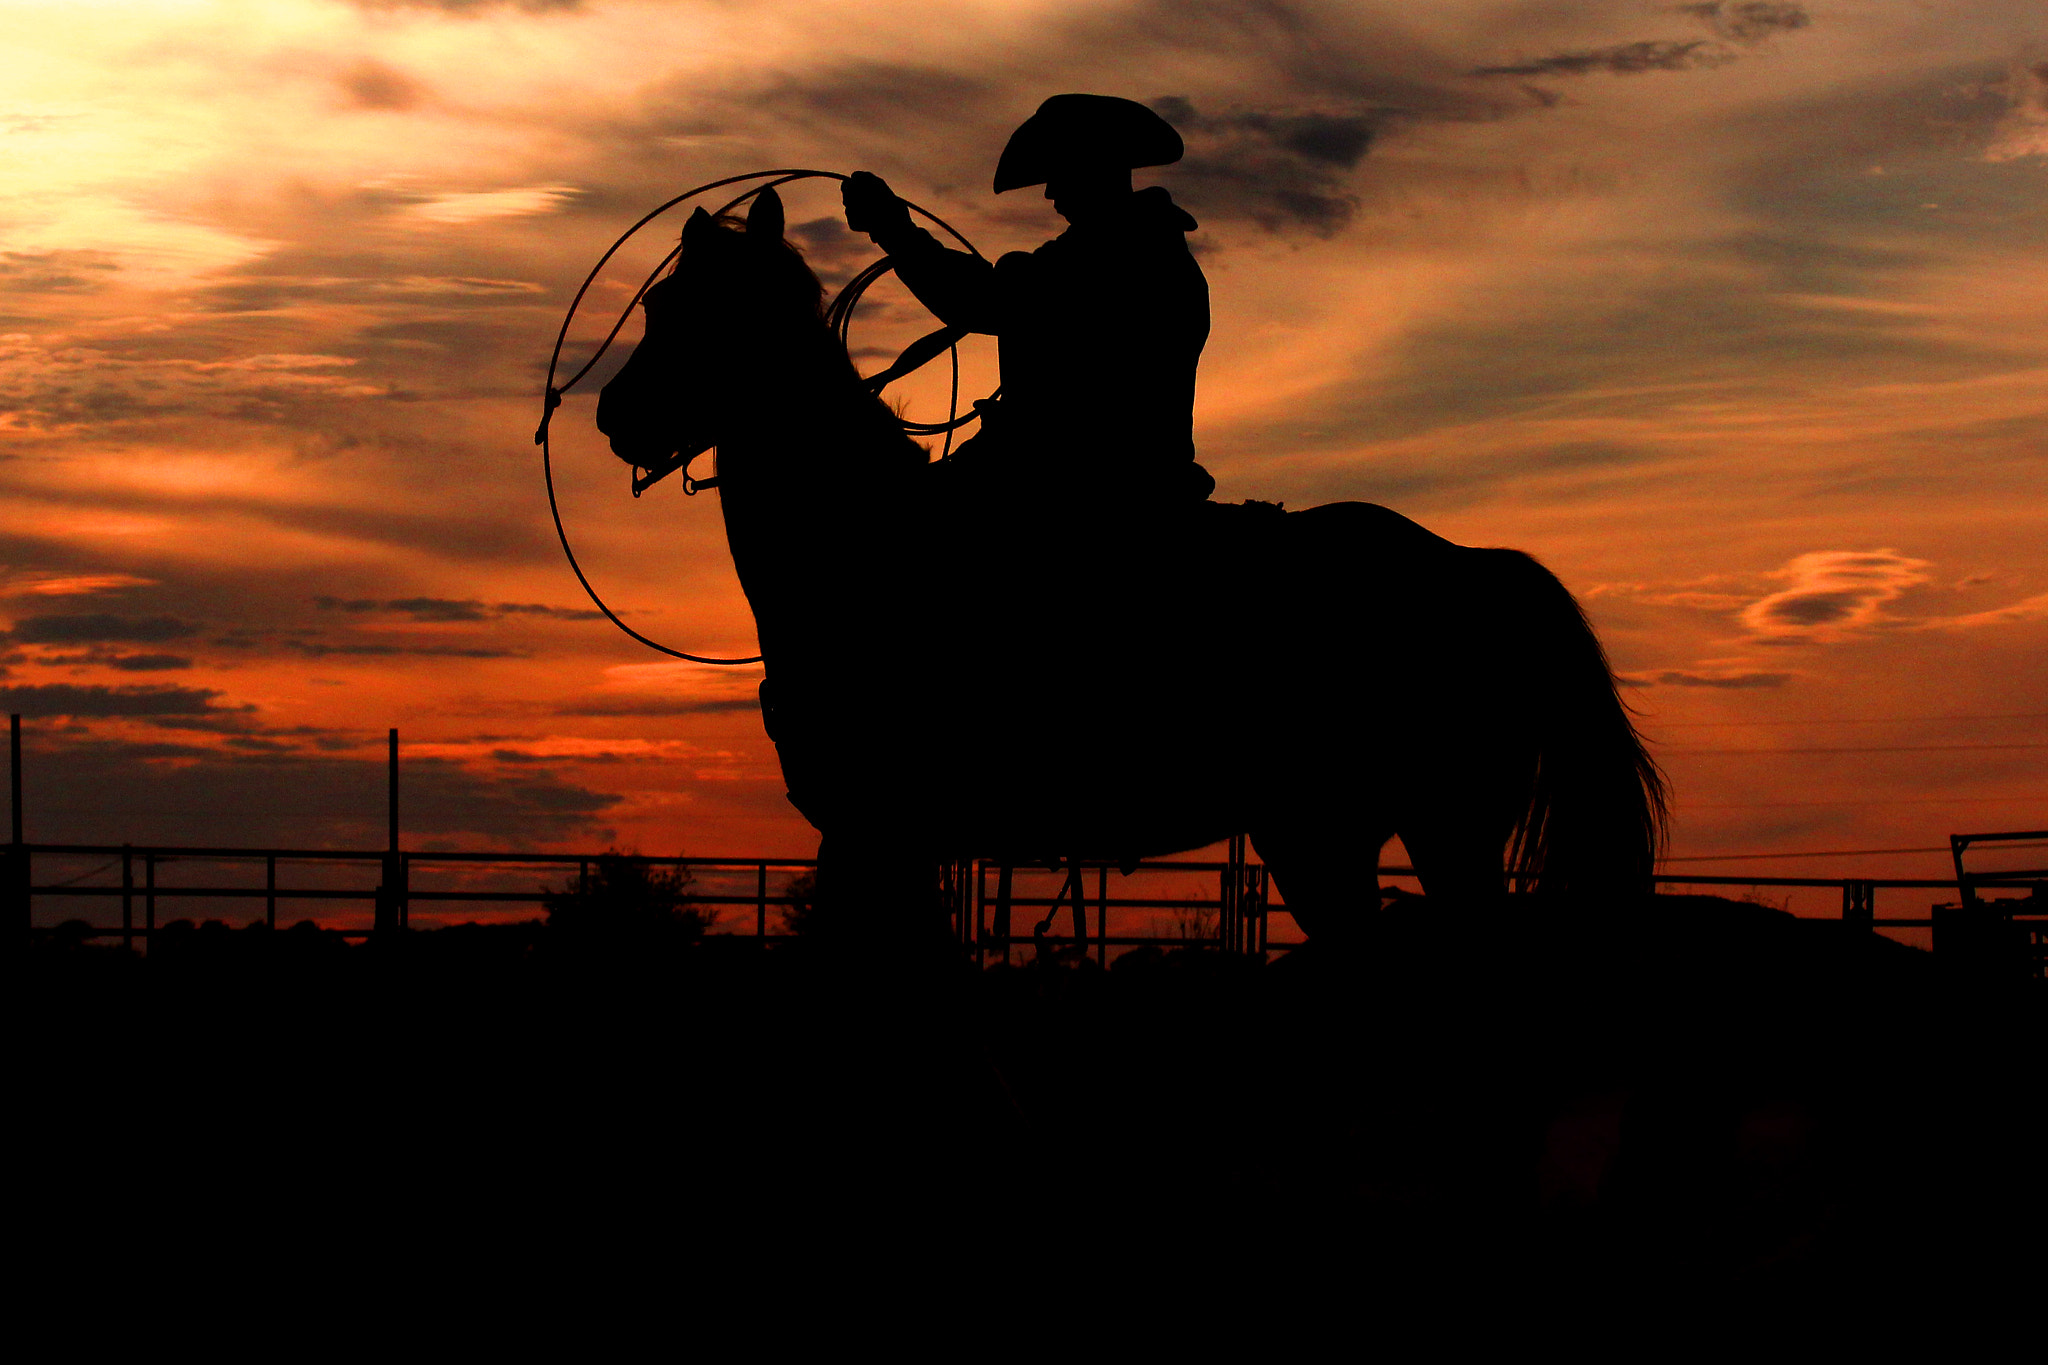 Photograph Rodeo Cowboy by Mitch Kloorfain on 500px